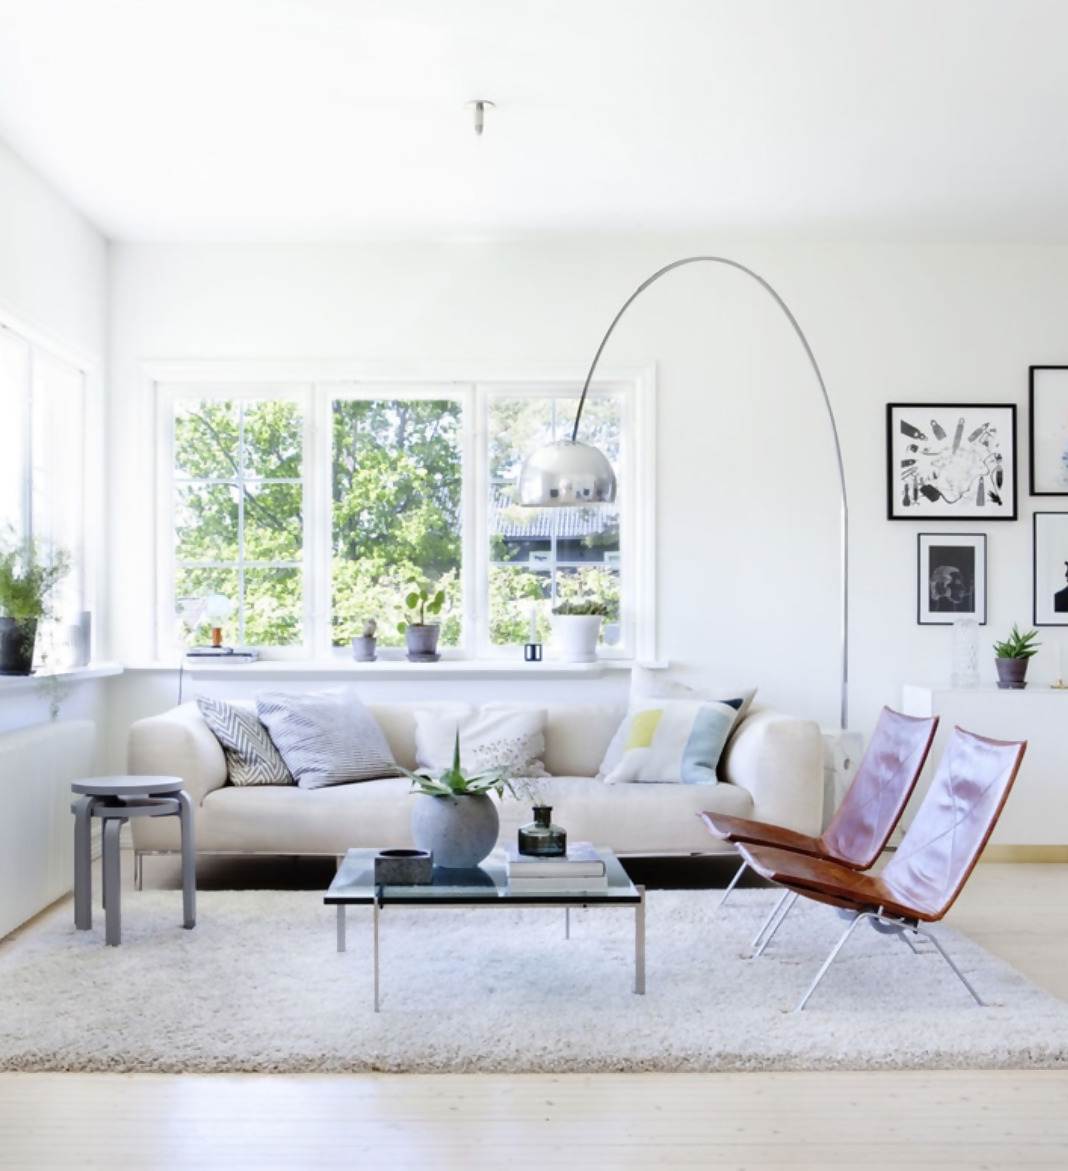 Enhance any room with the Arco lamp